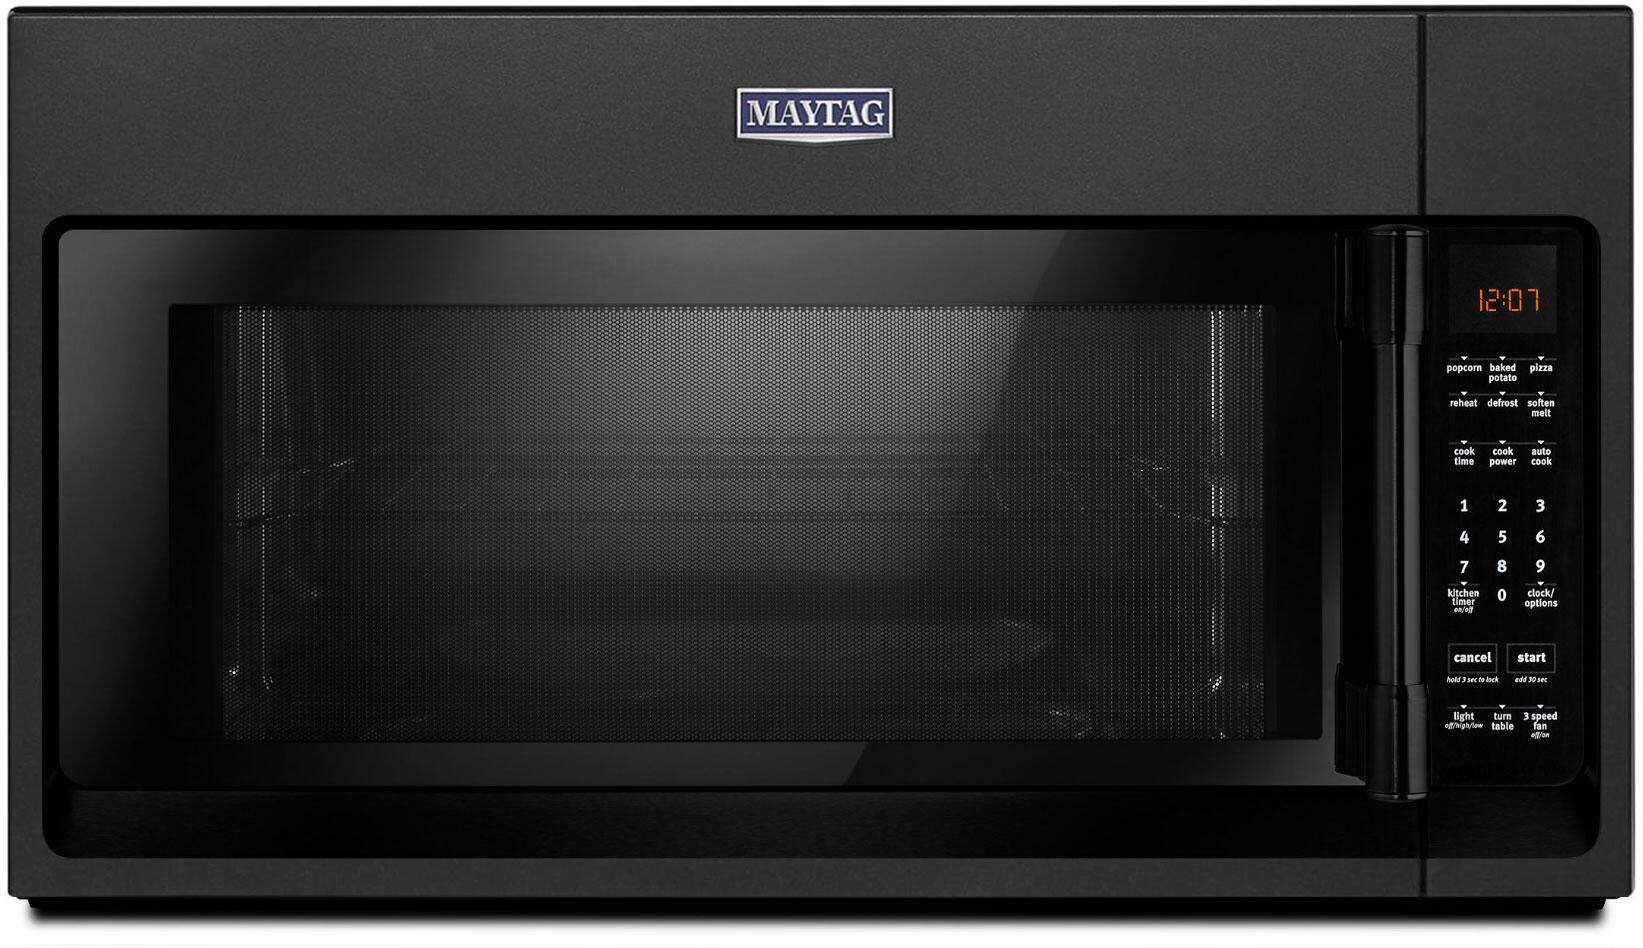 Maytag MMV1174HK 30 Inch Over the Range 1 7 cu  ft  Capacity Microwave Oven